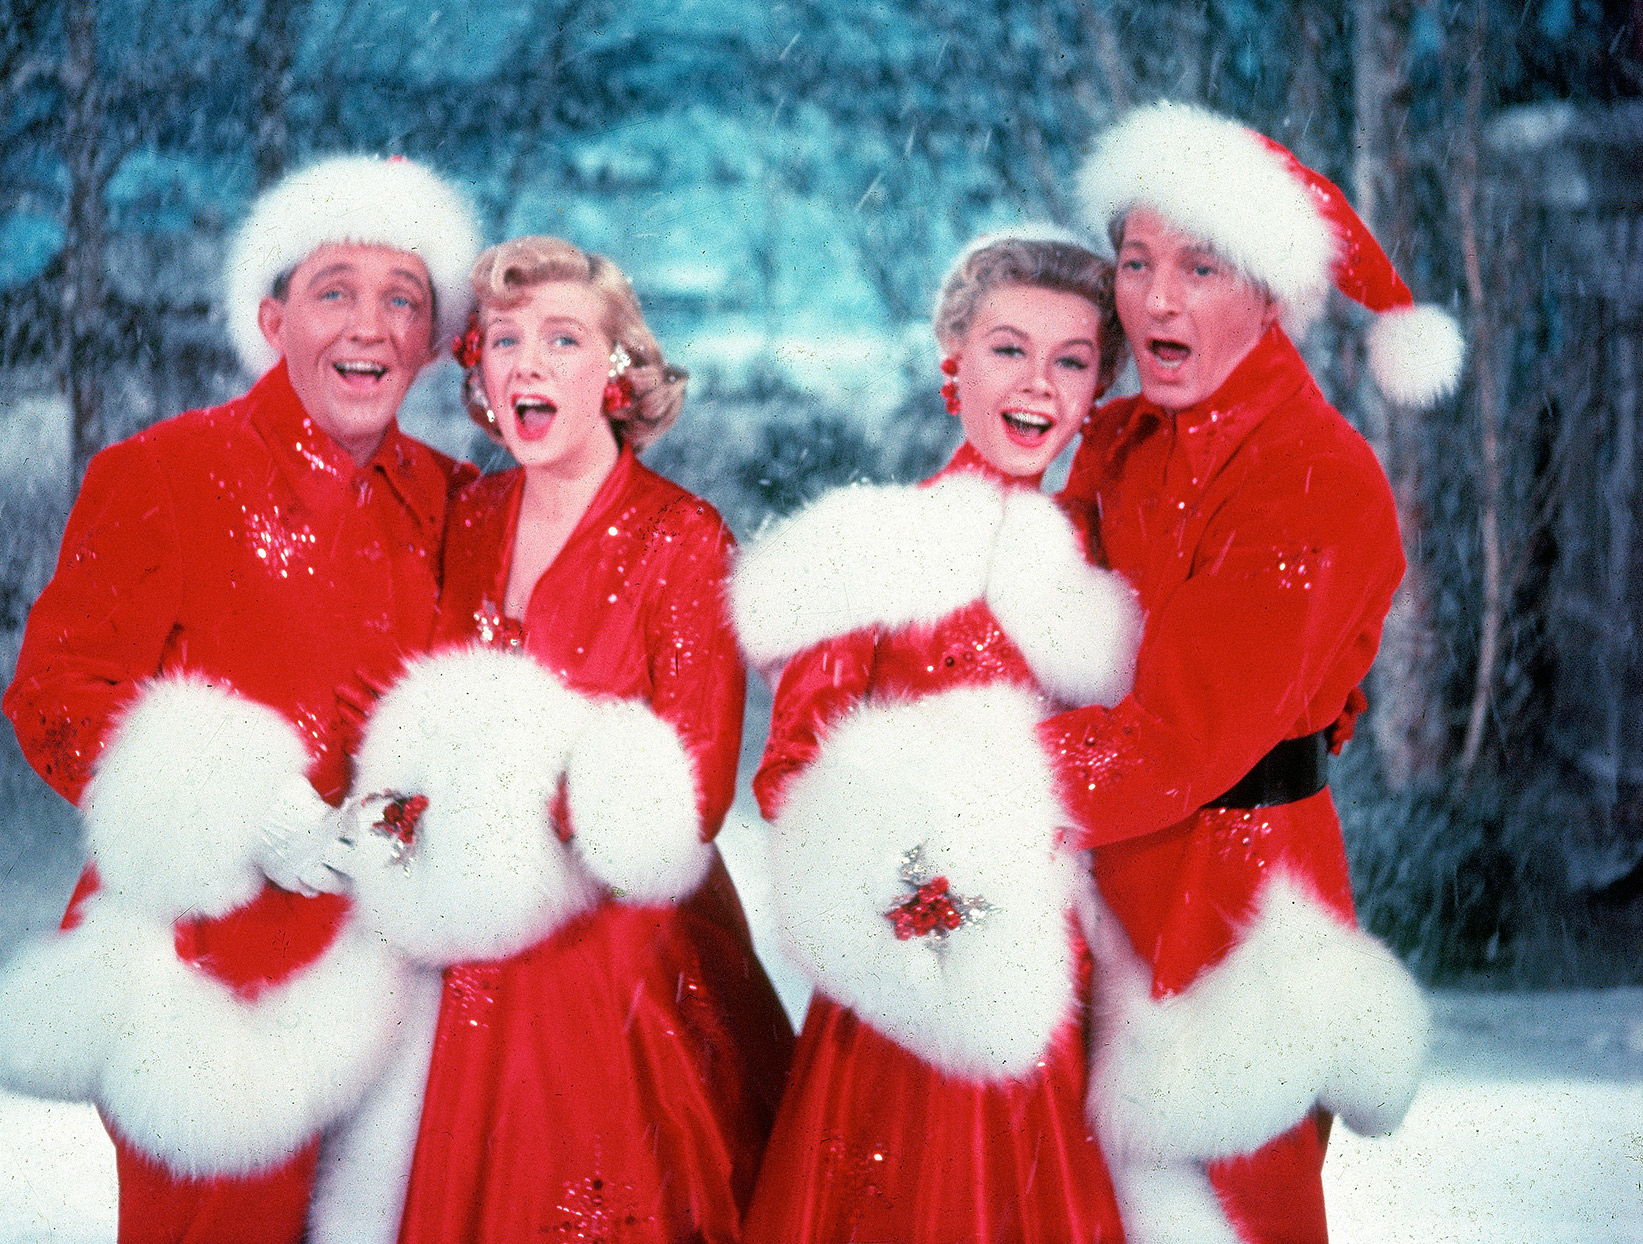 Bing Crosby, Rosemary Clooney, Vera-Ellen and Danny Kaye sing together, while dressed in fur-trimmed red outfits in a scene from the film White Christmas